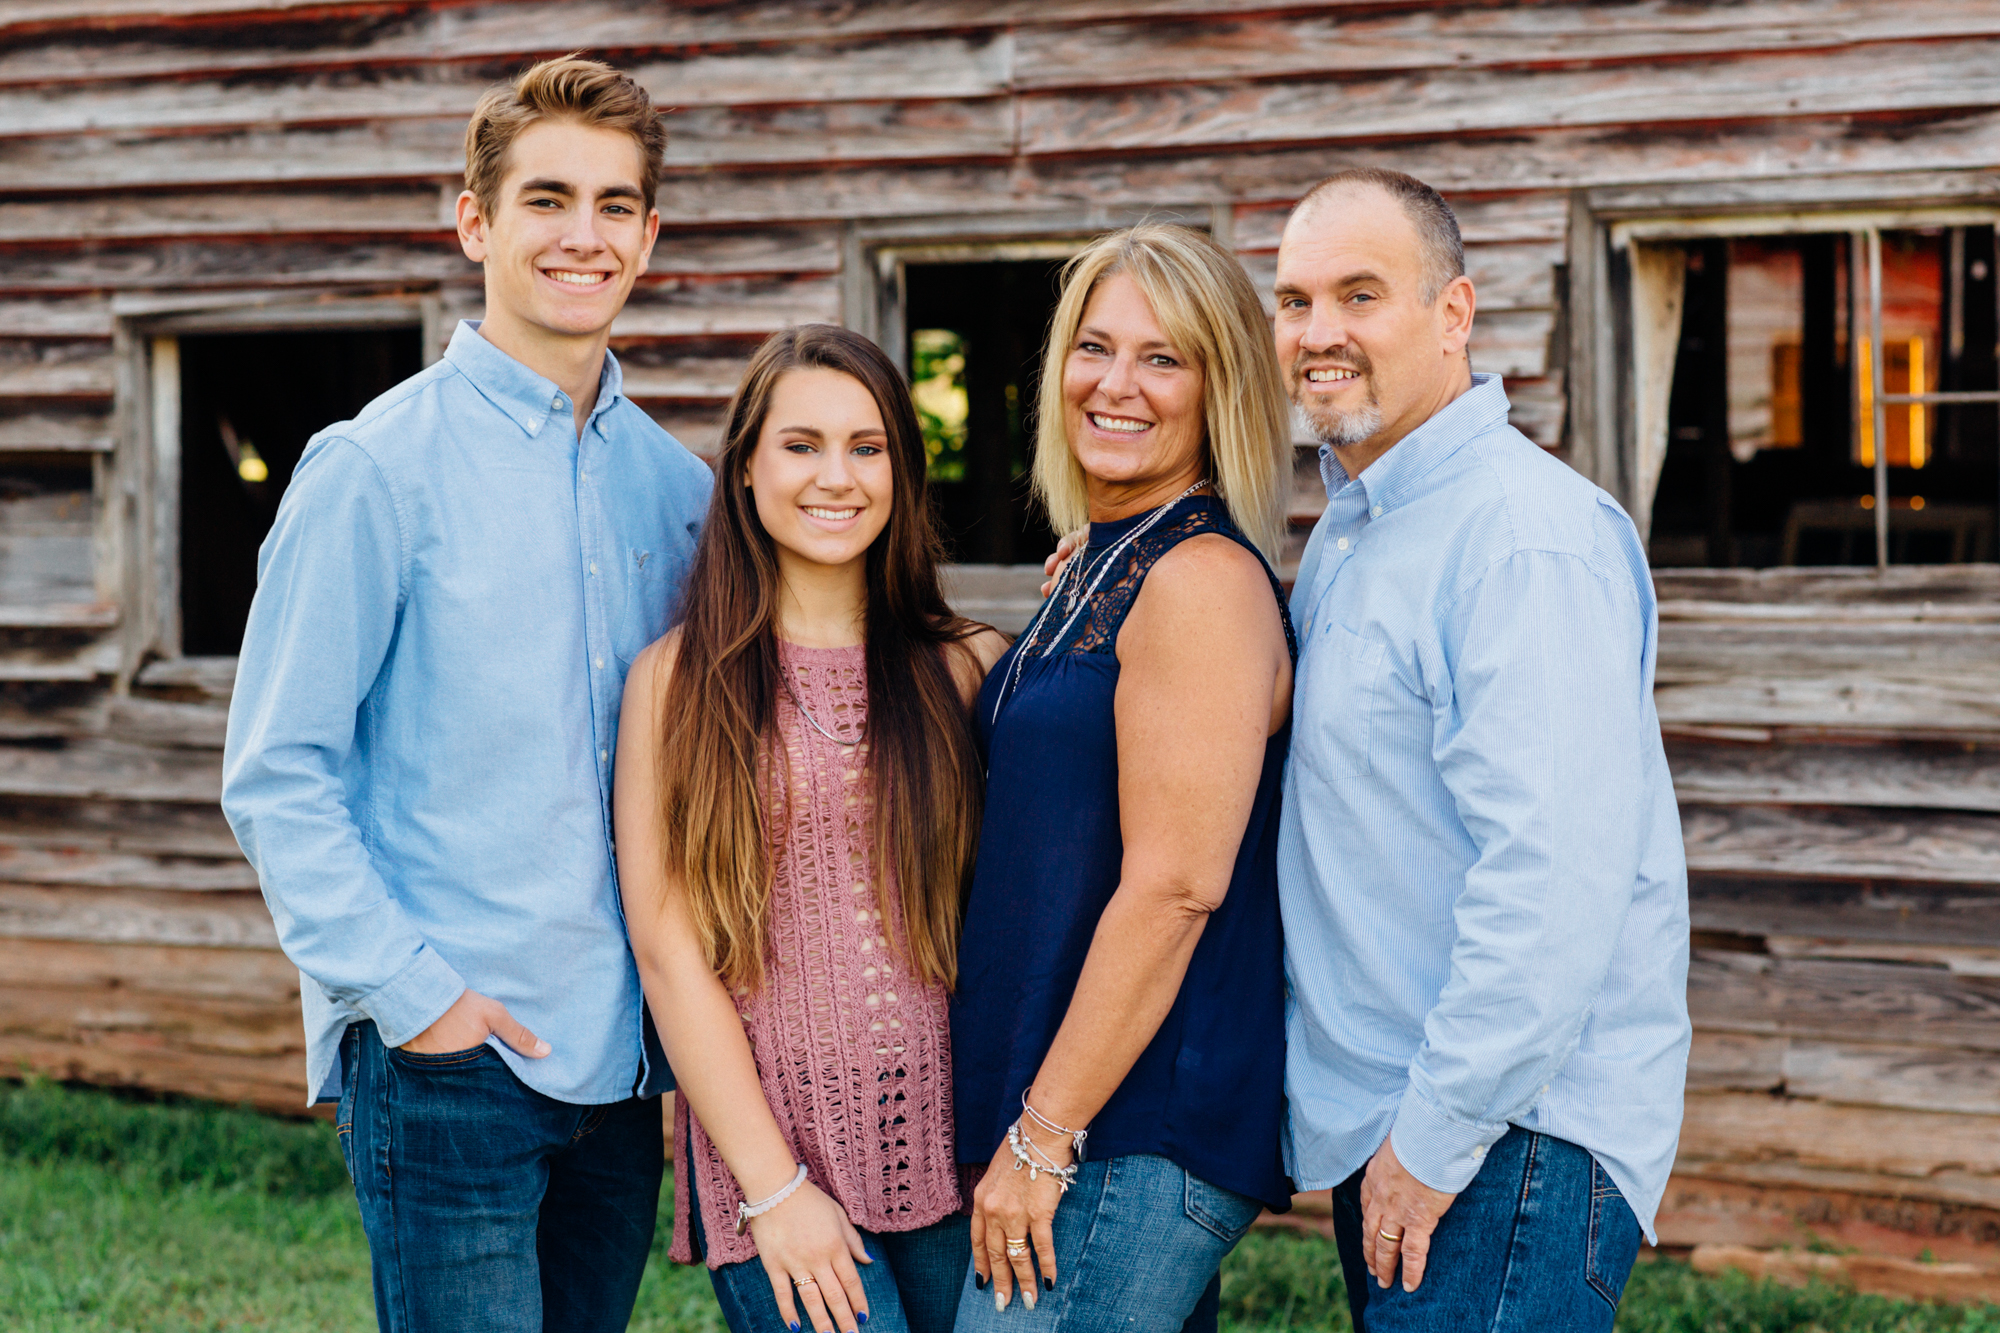 Family posing for family portrait, they have a high school senior